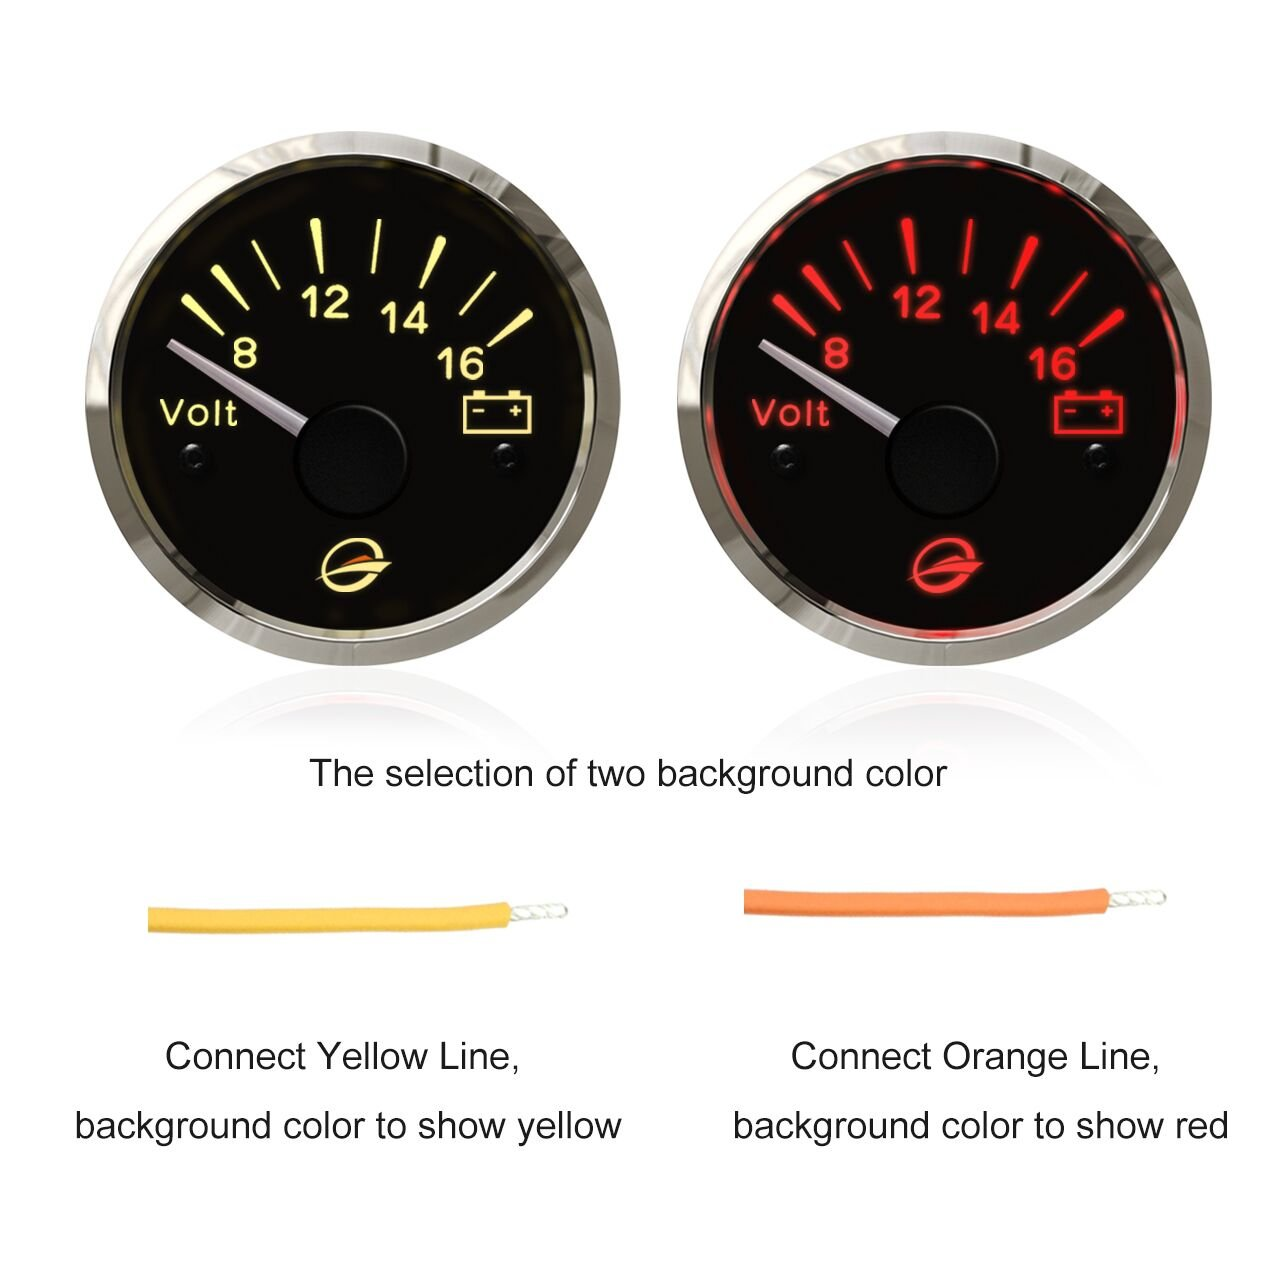 12v Electrical Voltmeter Gauge Meter 2 52mm Ip67 Basic Motorcycle Wiring Diagram Protection Rates Device Red Yellow Backlight Designed 8 16v Negative Ground Systems Install